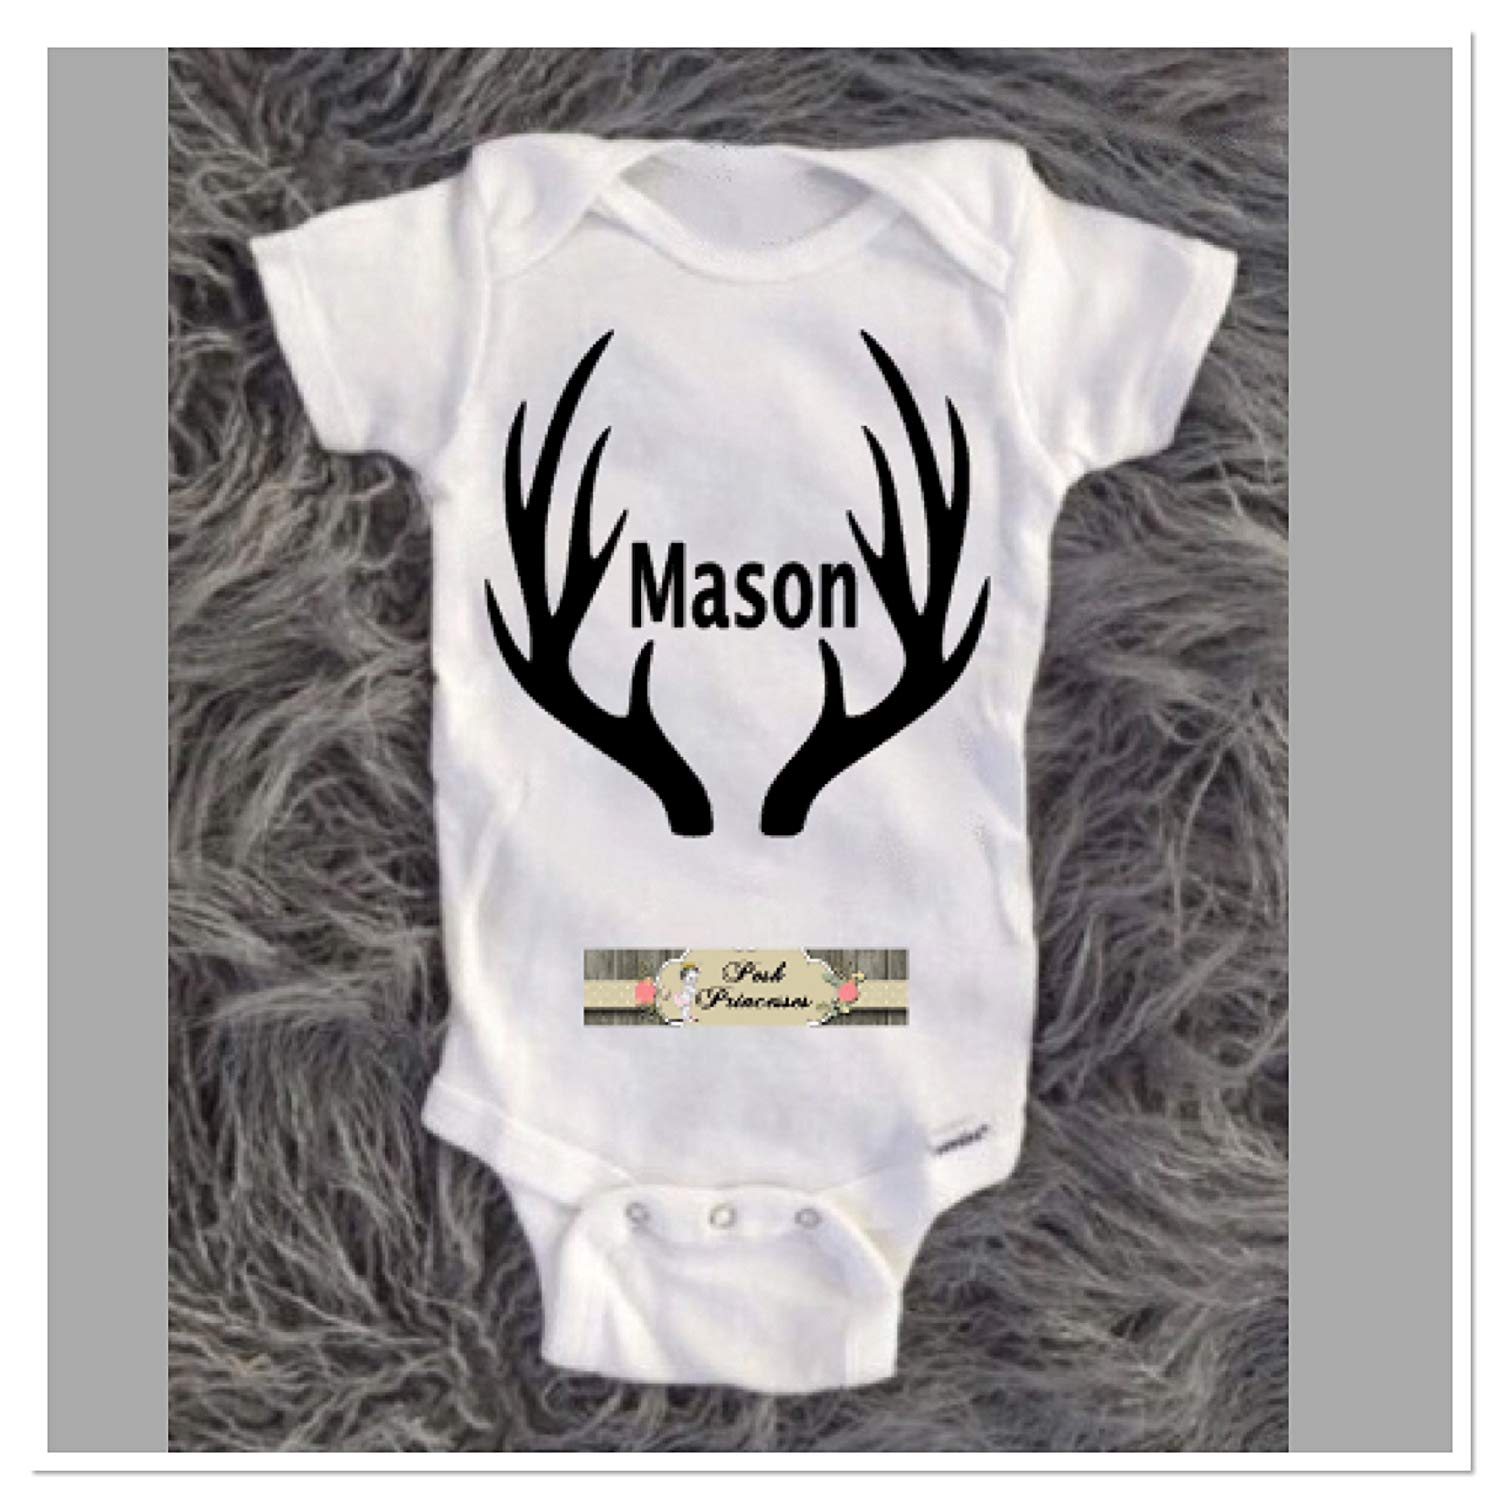 eb368bdd1 Get Quotations · Baby Boy Onesie, Deer Antler Hunting Onesie, Personalized  Deer Antler Onesie Boy Birthday Shirt